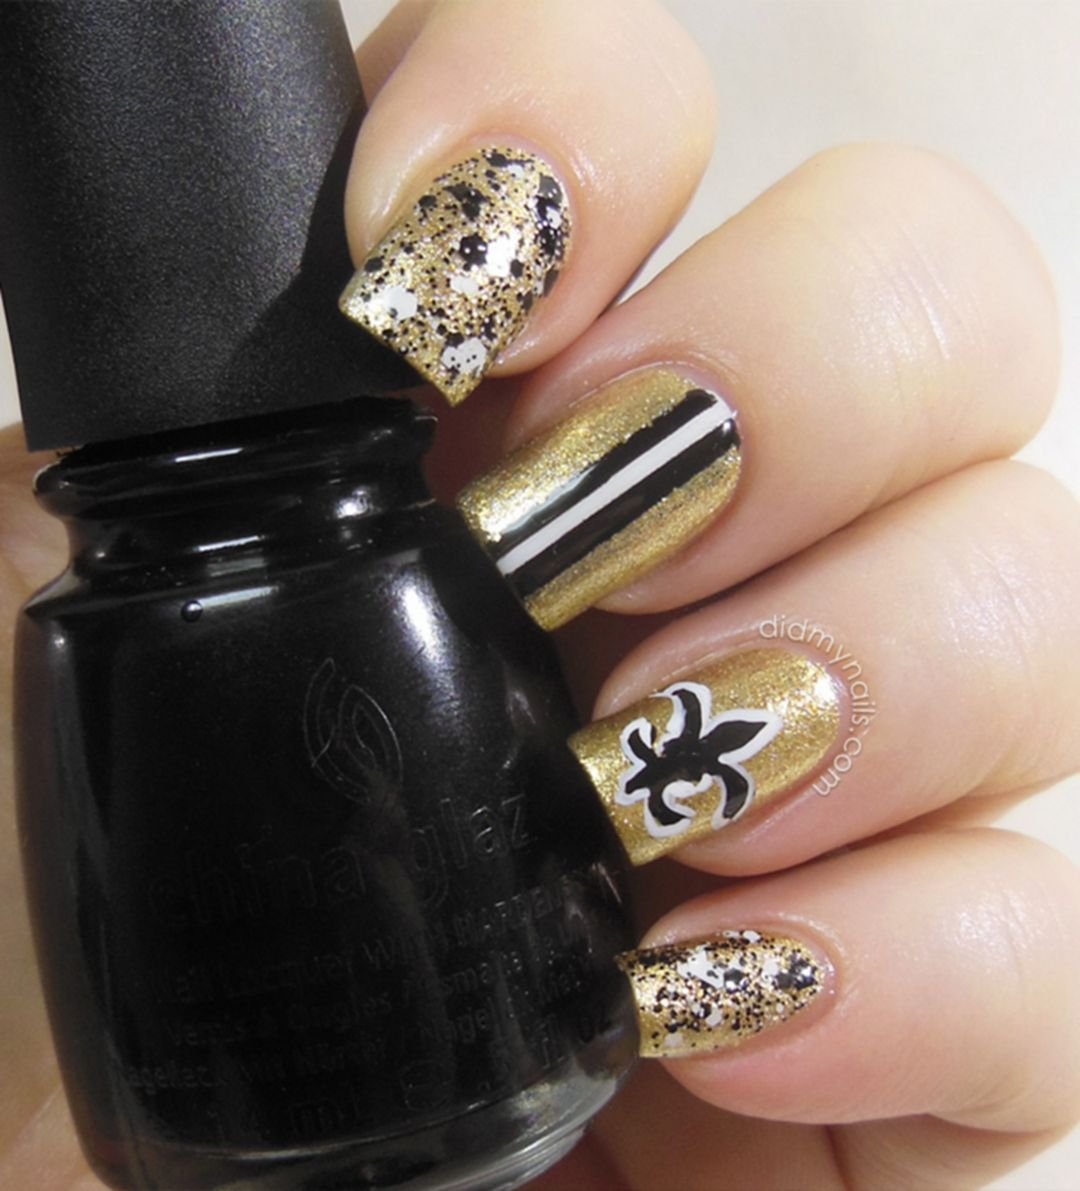 75+ Beautiful New Orleans Nails Art Ideas | Face care, Nail care and ...